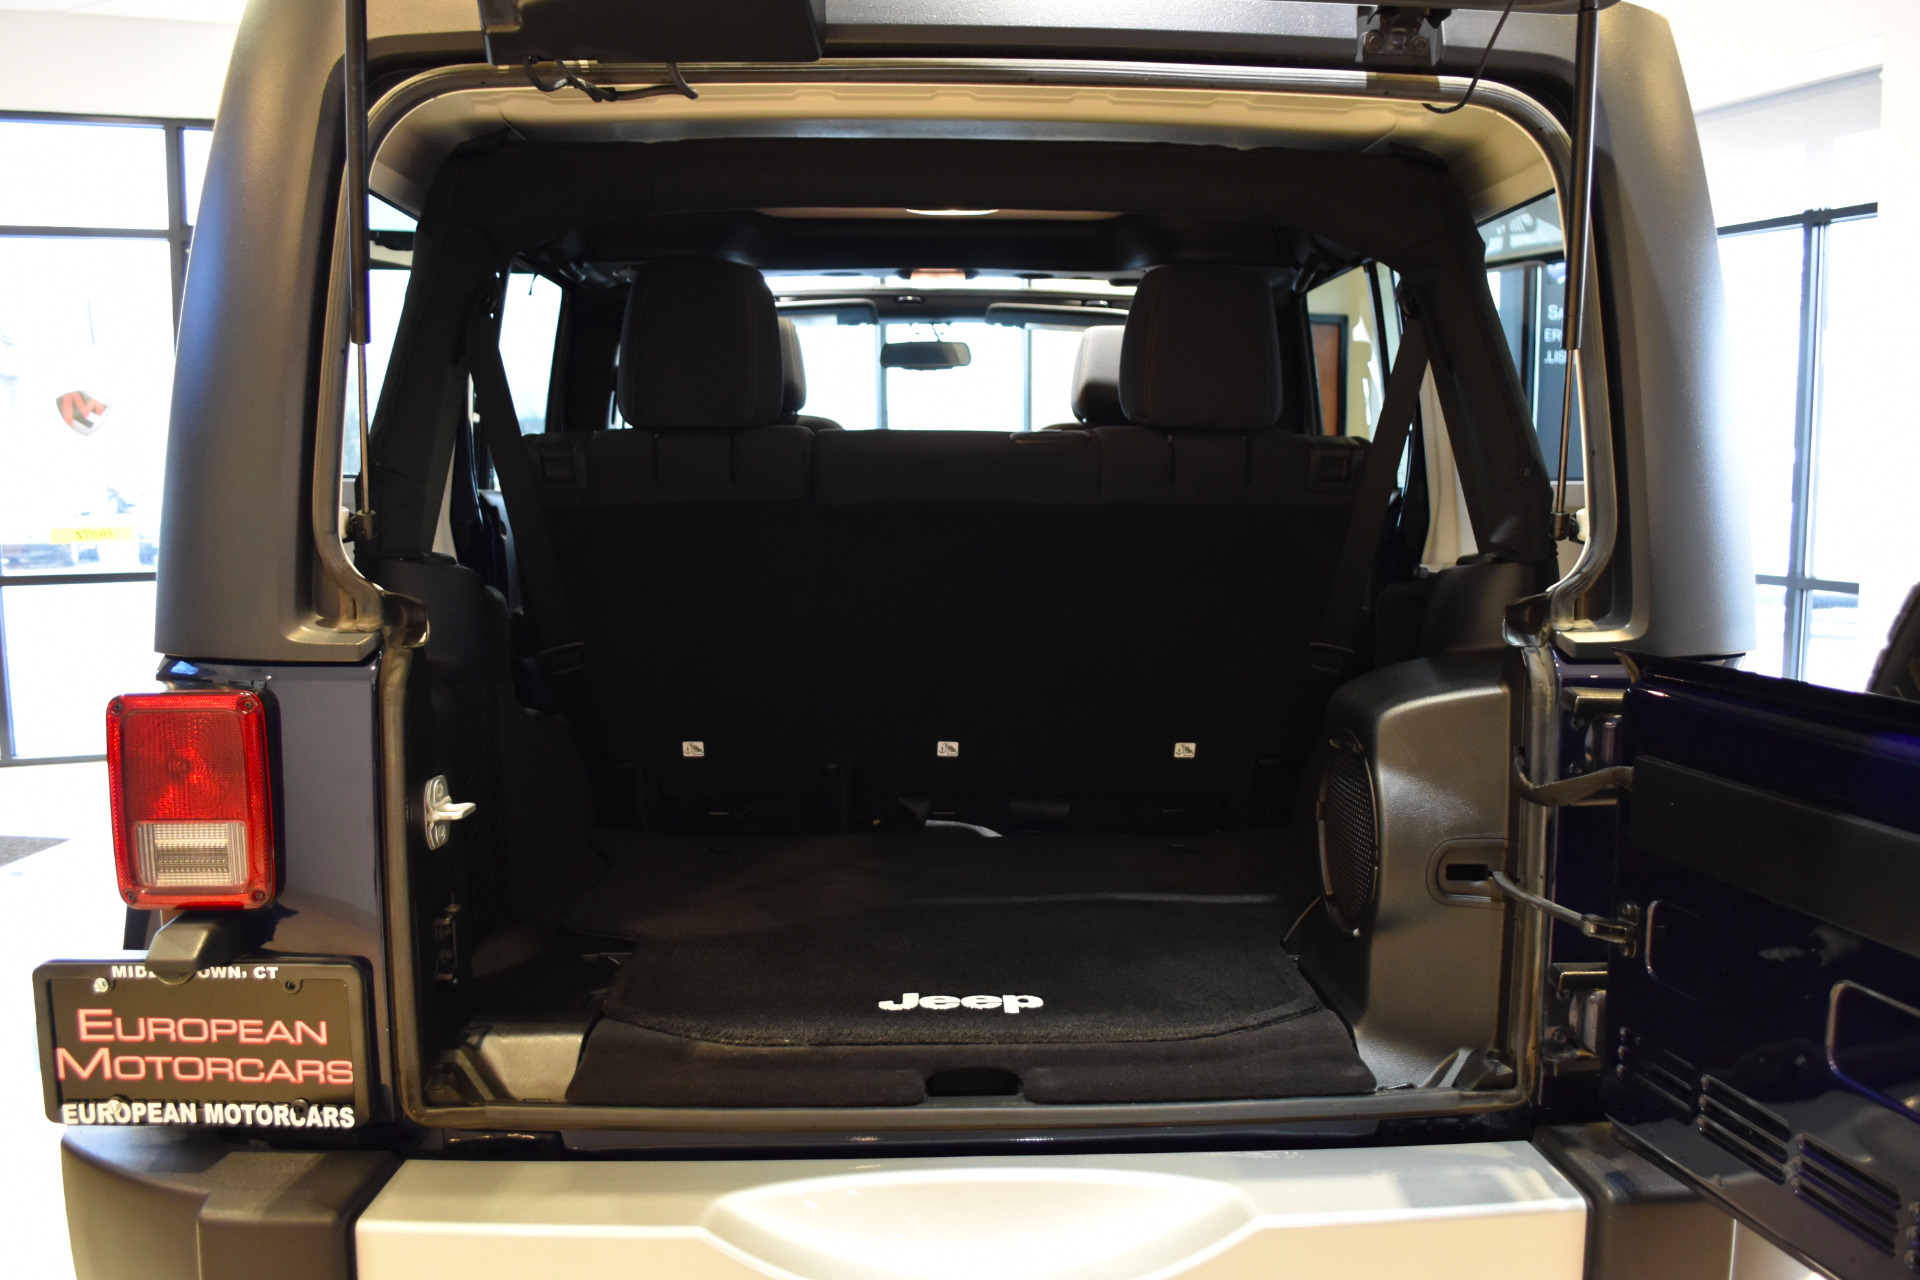 2013 jeep wrangler unlimited sahara for sale near for Euro motors collision center